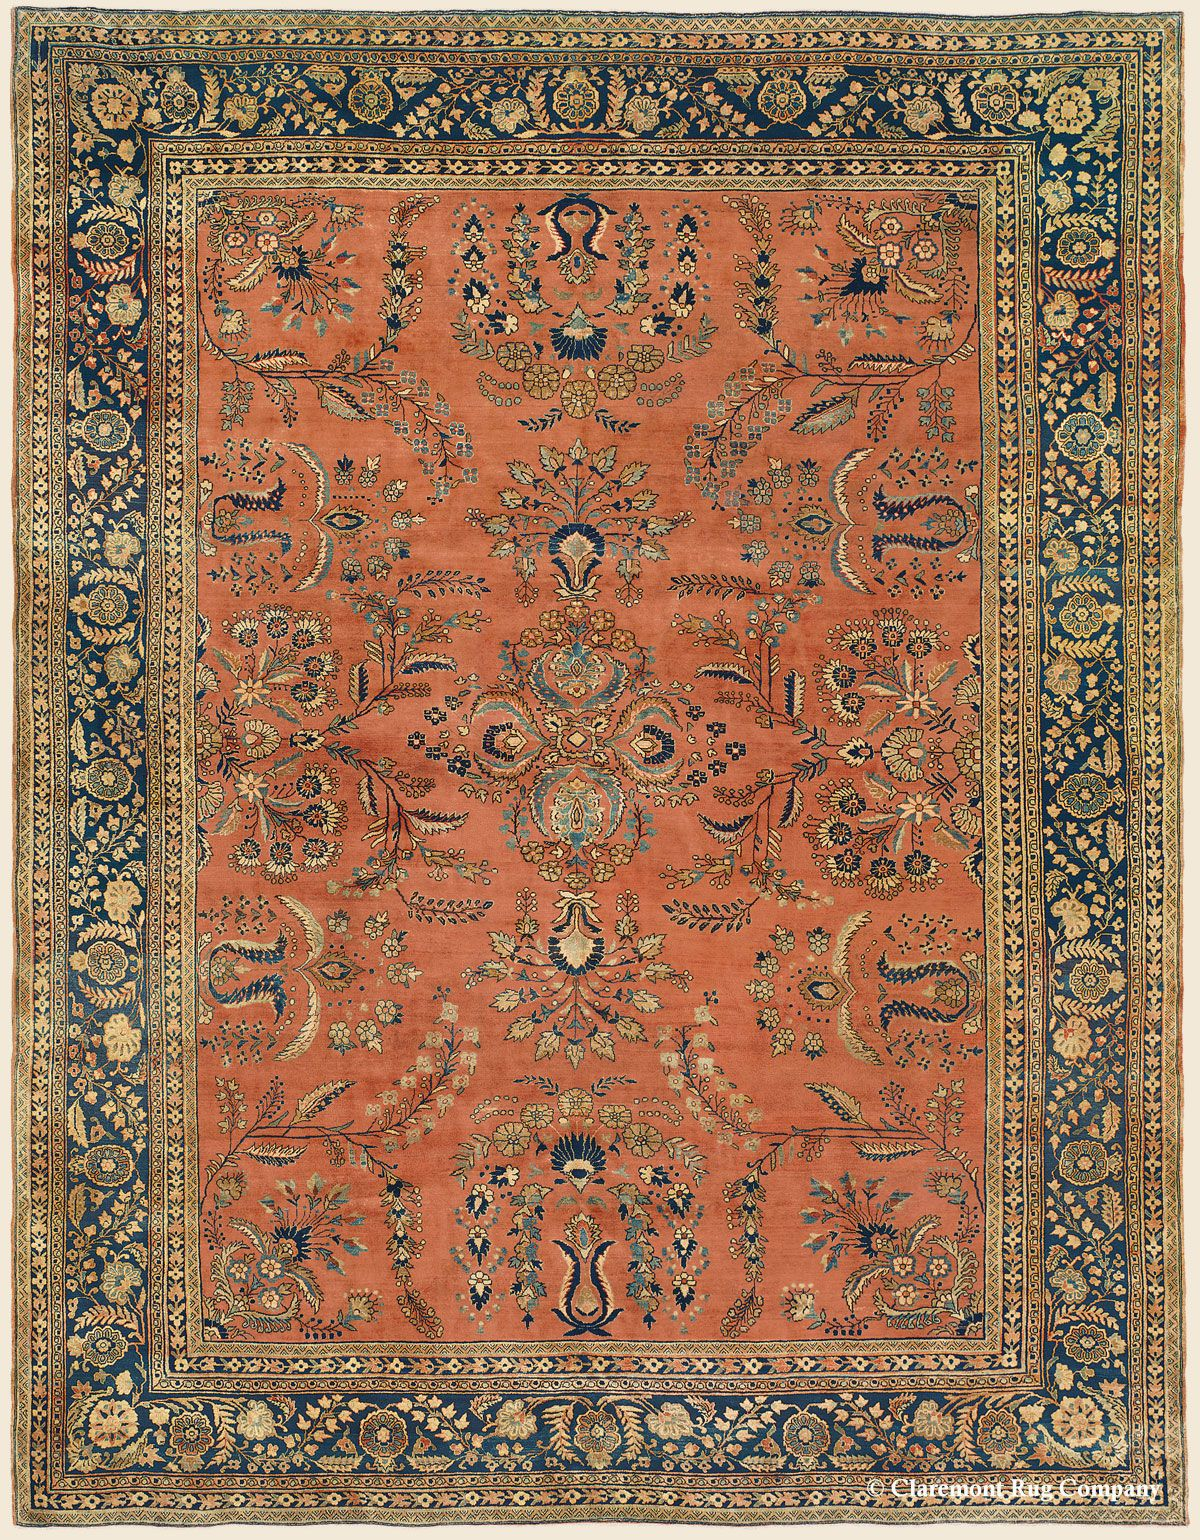 Exquisite 19th Early 20th Century Rugs From Tribal Rugs To City Oversize Carpets Elite San Fran Antique Persian Carpet Antique Oriental Rugs Persian Carpet